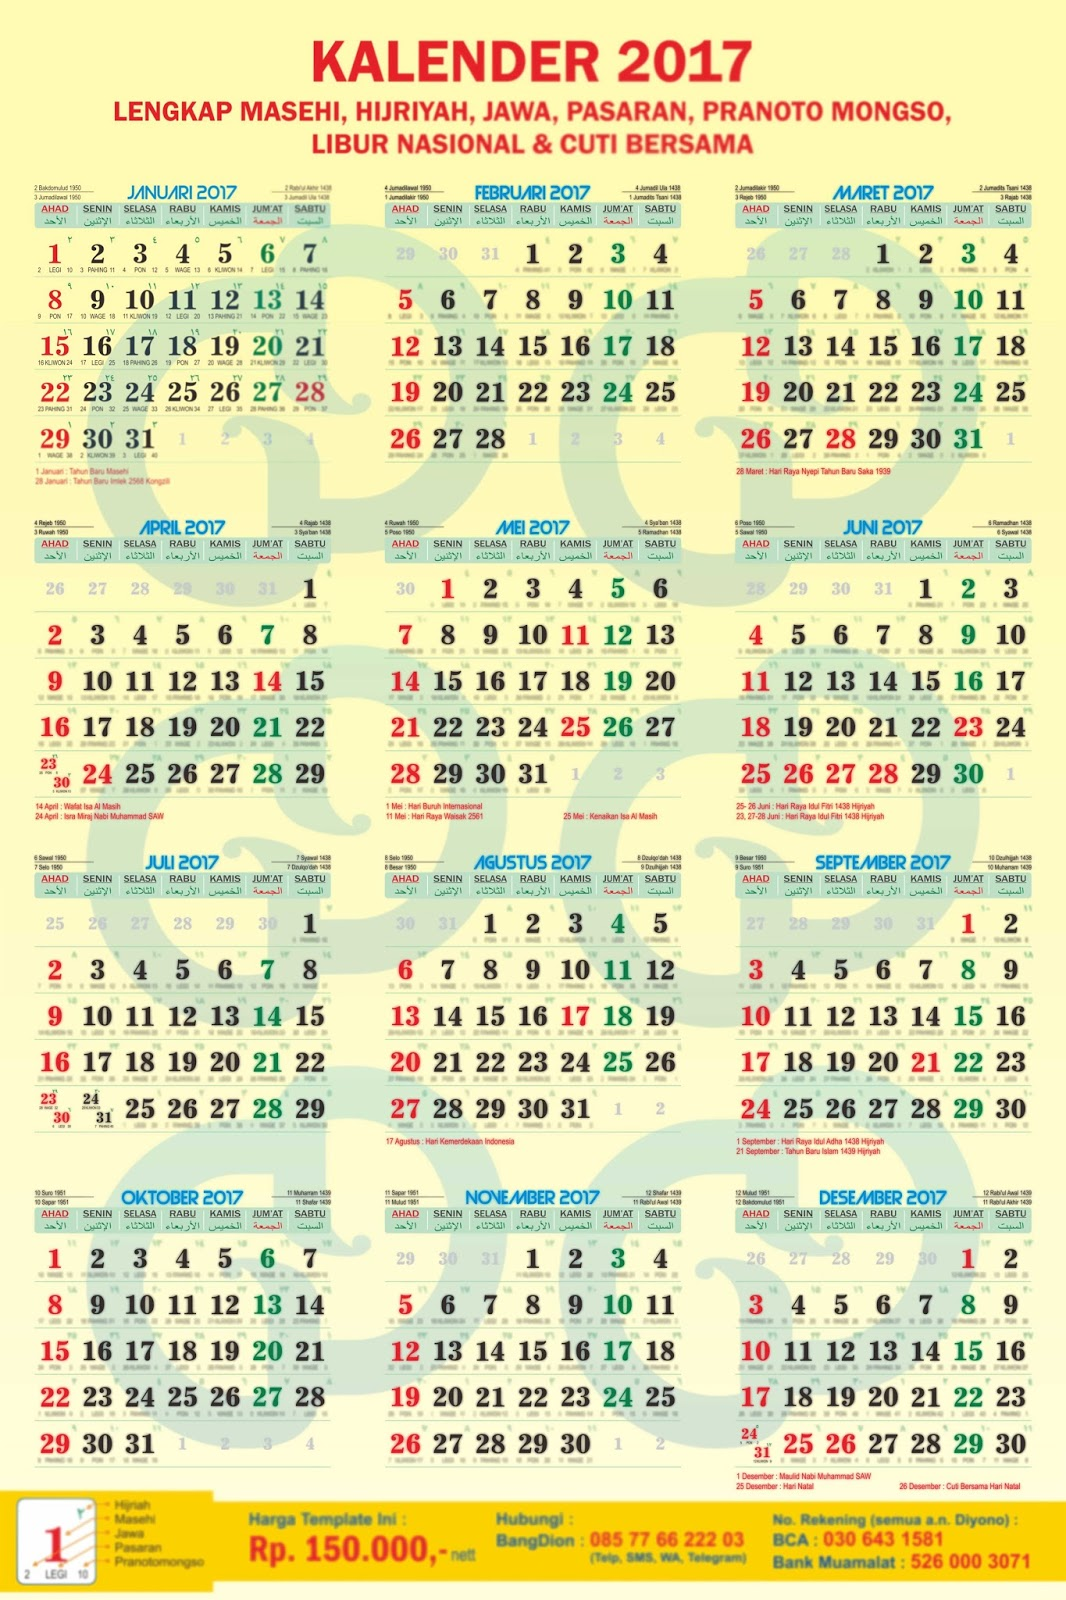 pusat cetak kalender 2017 kalender 2017 vector corel draw. Black Bedroom Furniture Sets. Home Design Ideas